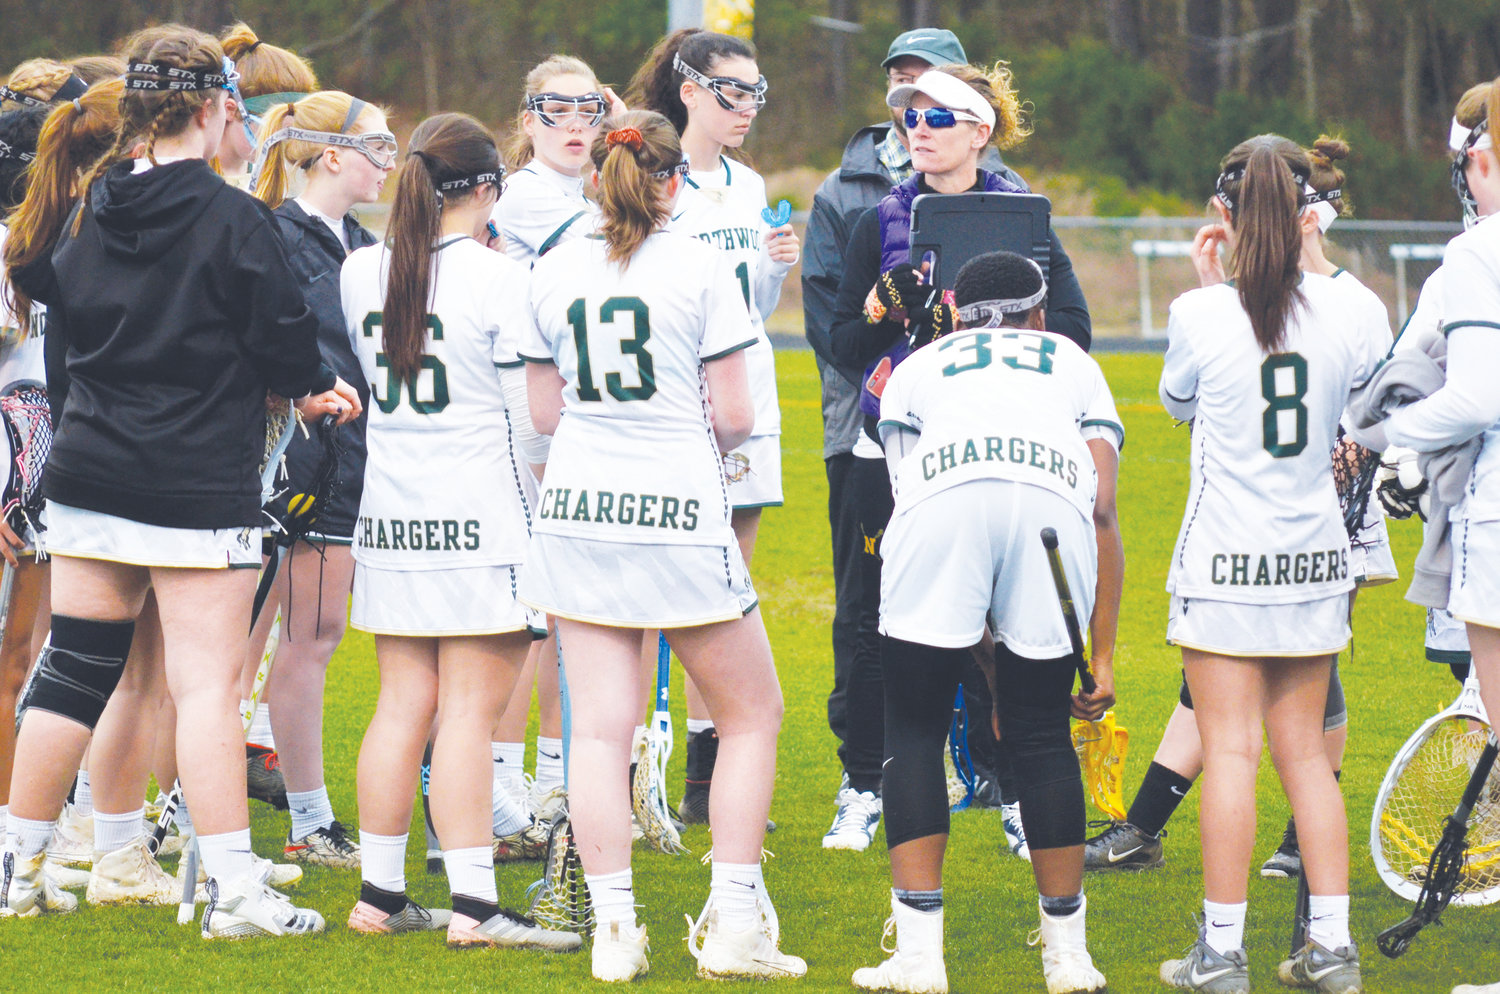 Coach Amanda Huegerich instructs her girls on the Northwood Girls Lacrosse team just before starting their game in recent high school action.